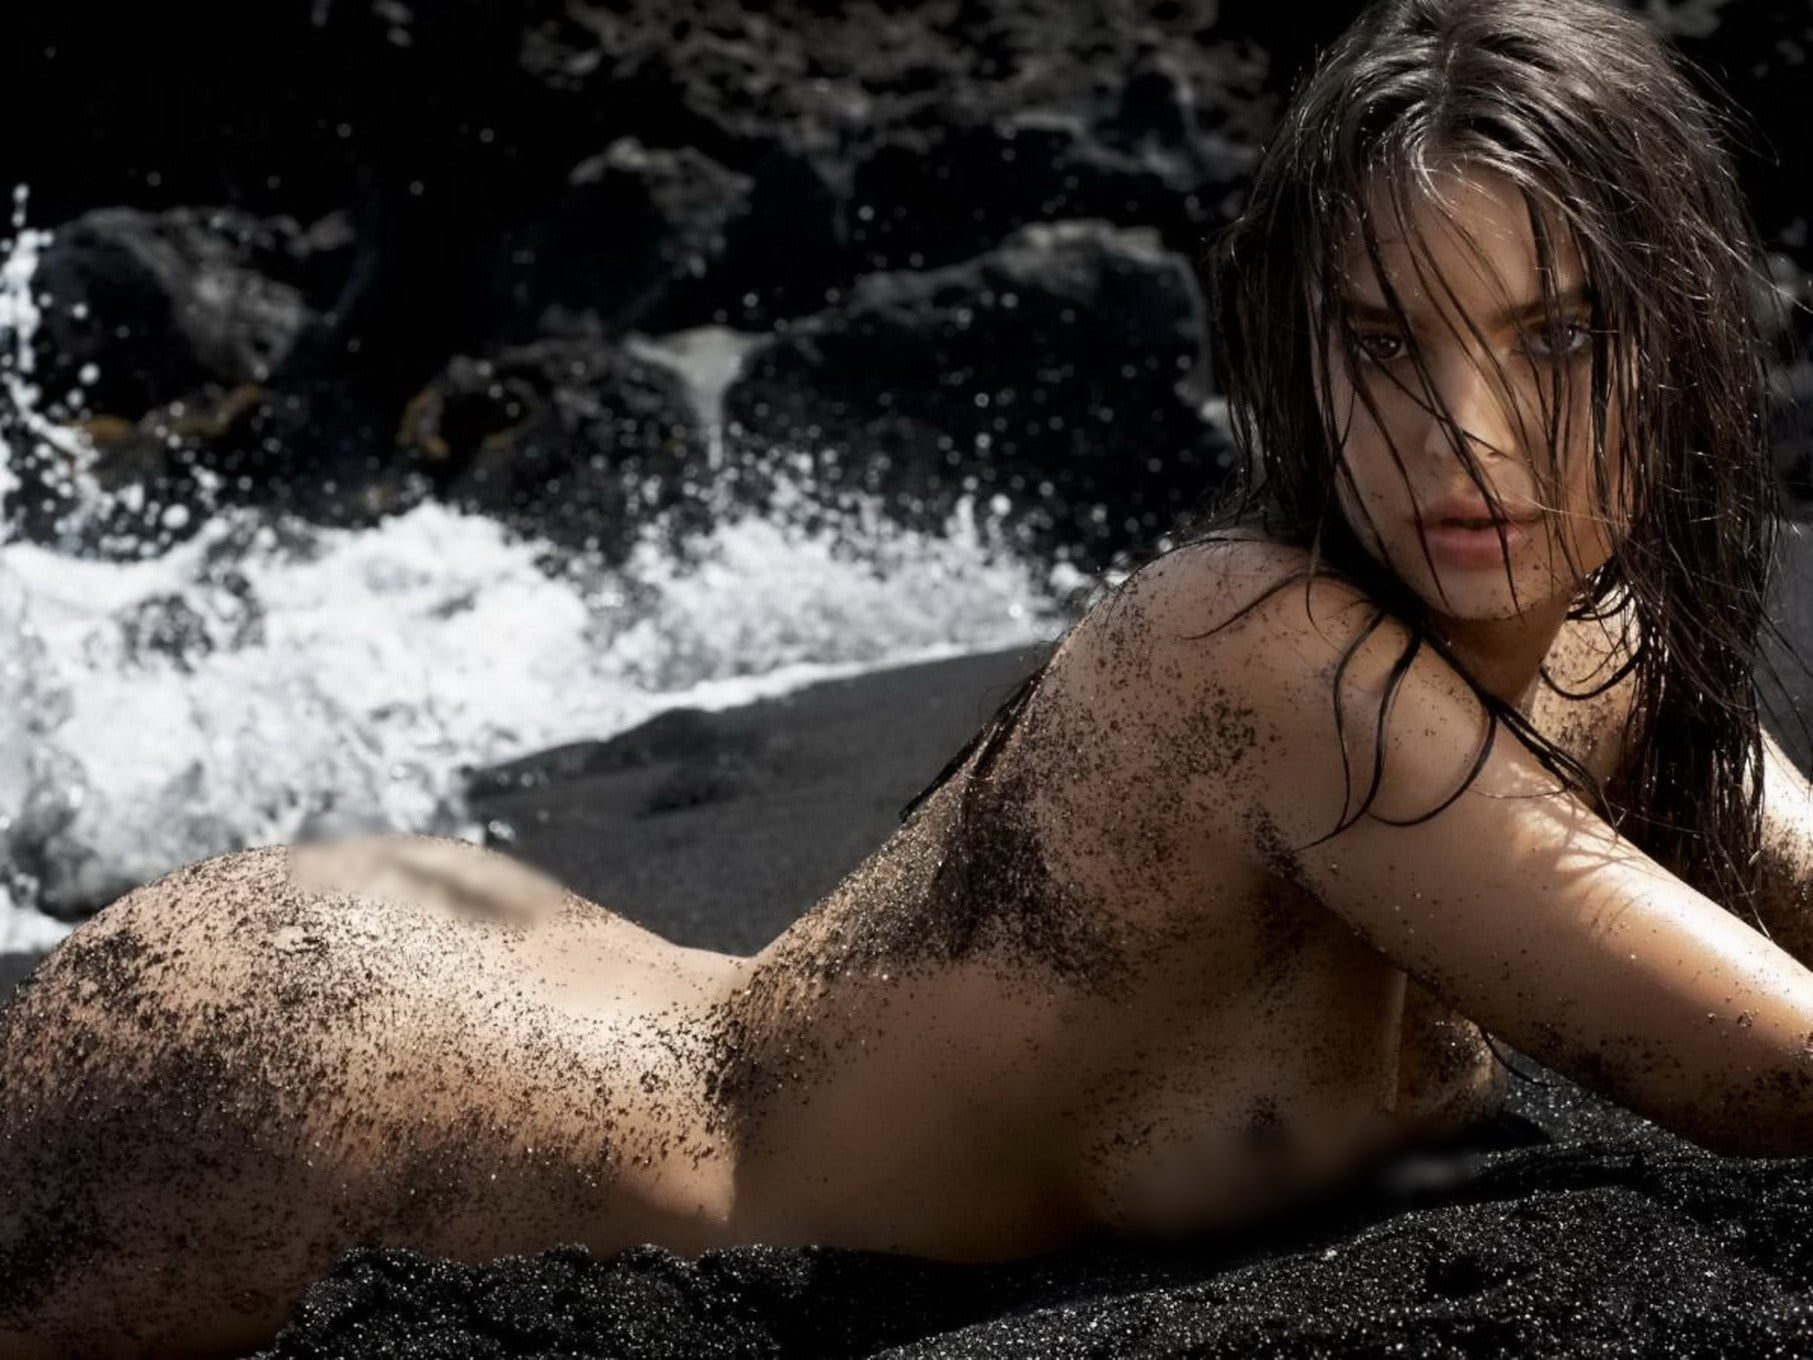 Photos of the popular American model Emily Ratajkowski with her nude work 9